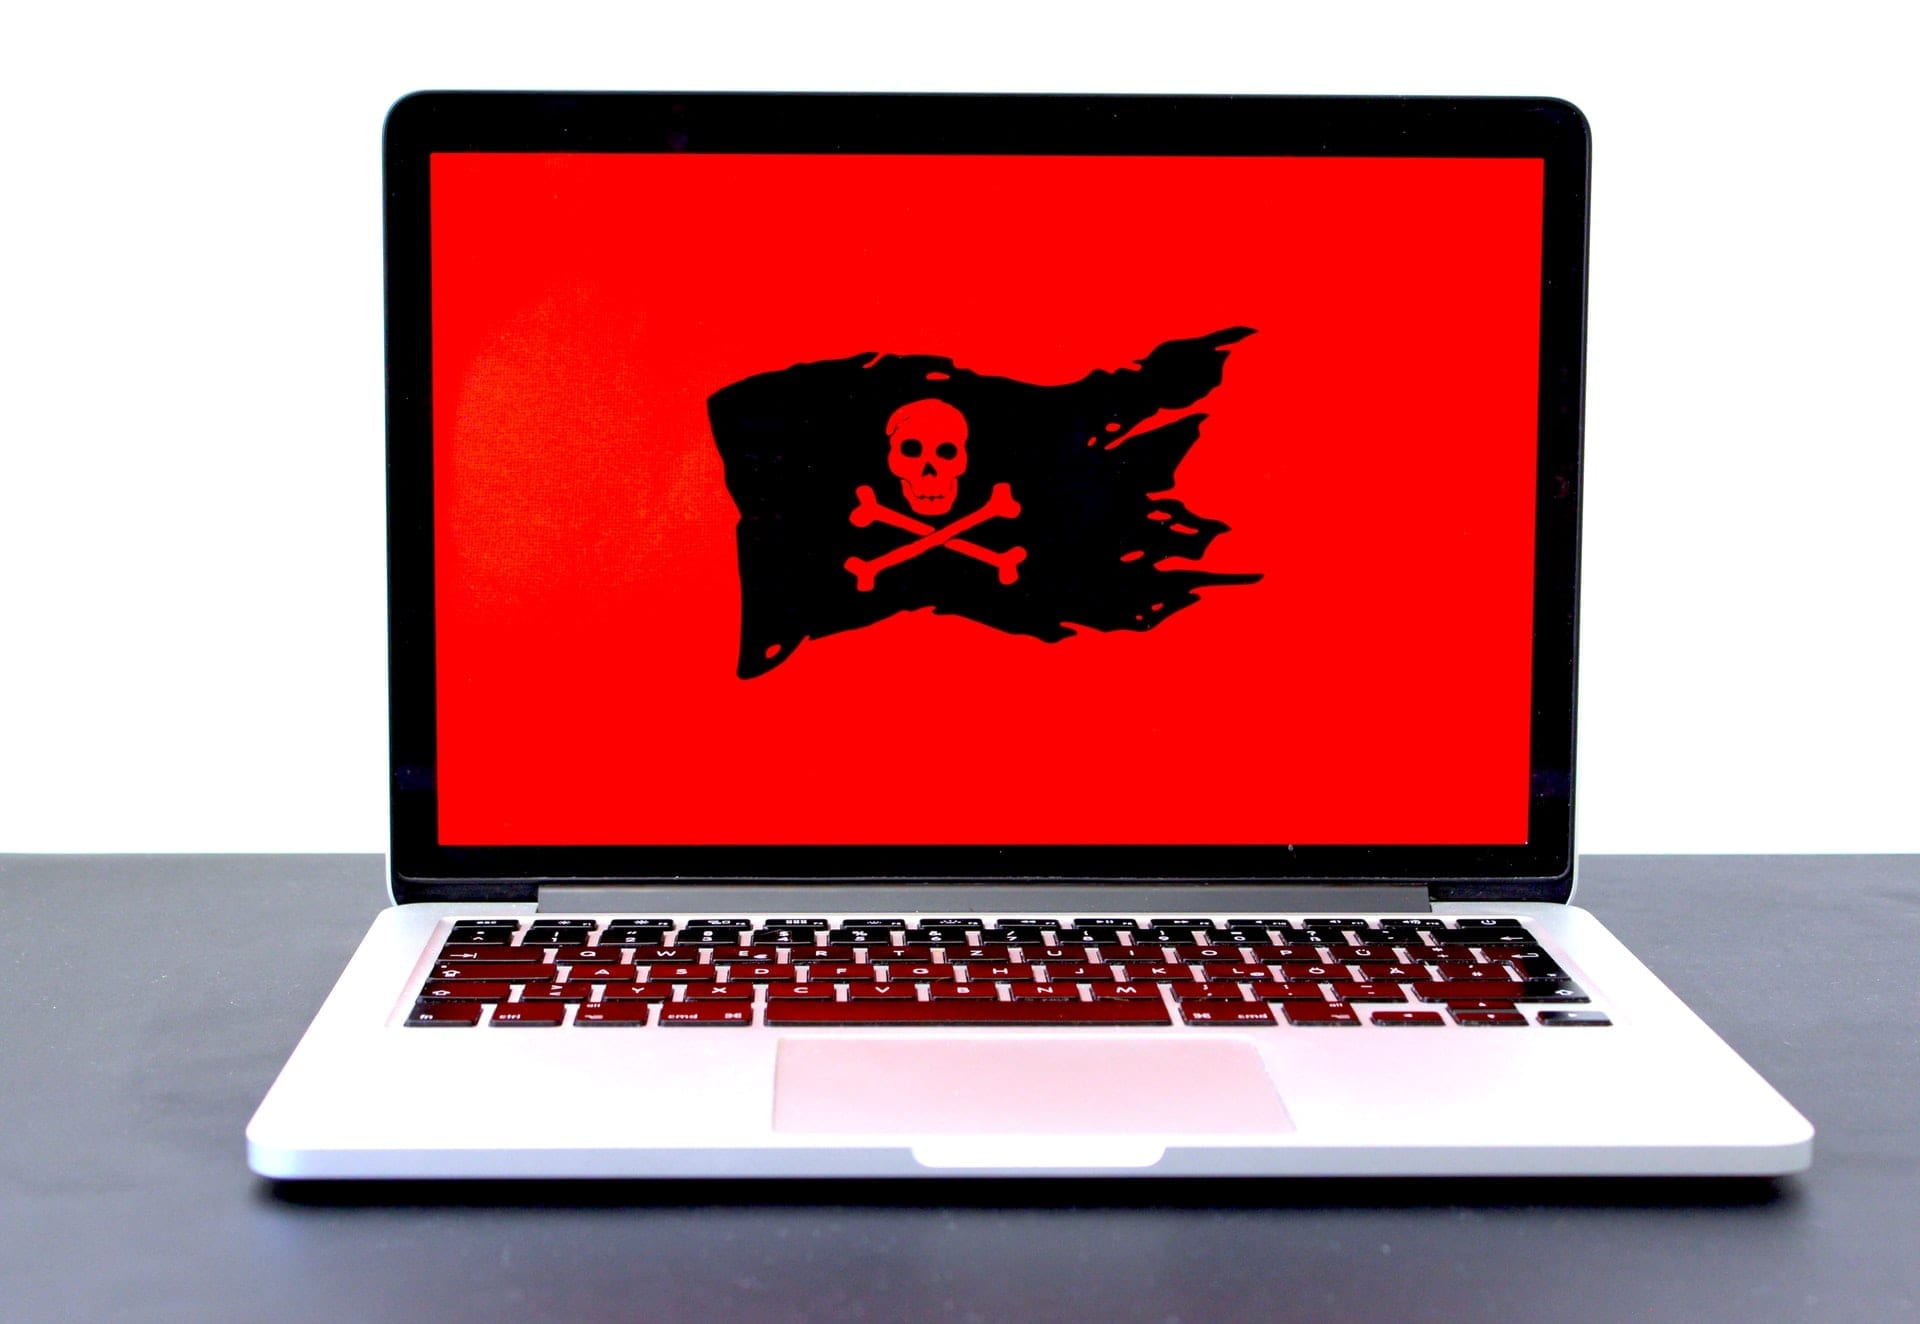 Laptop showing large pirate flag on red background representing malware